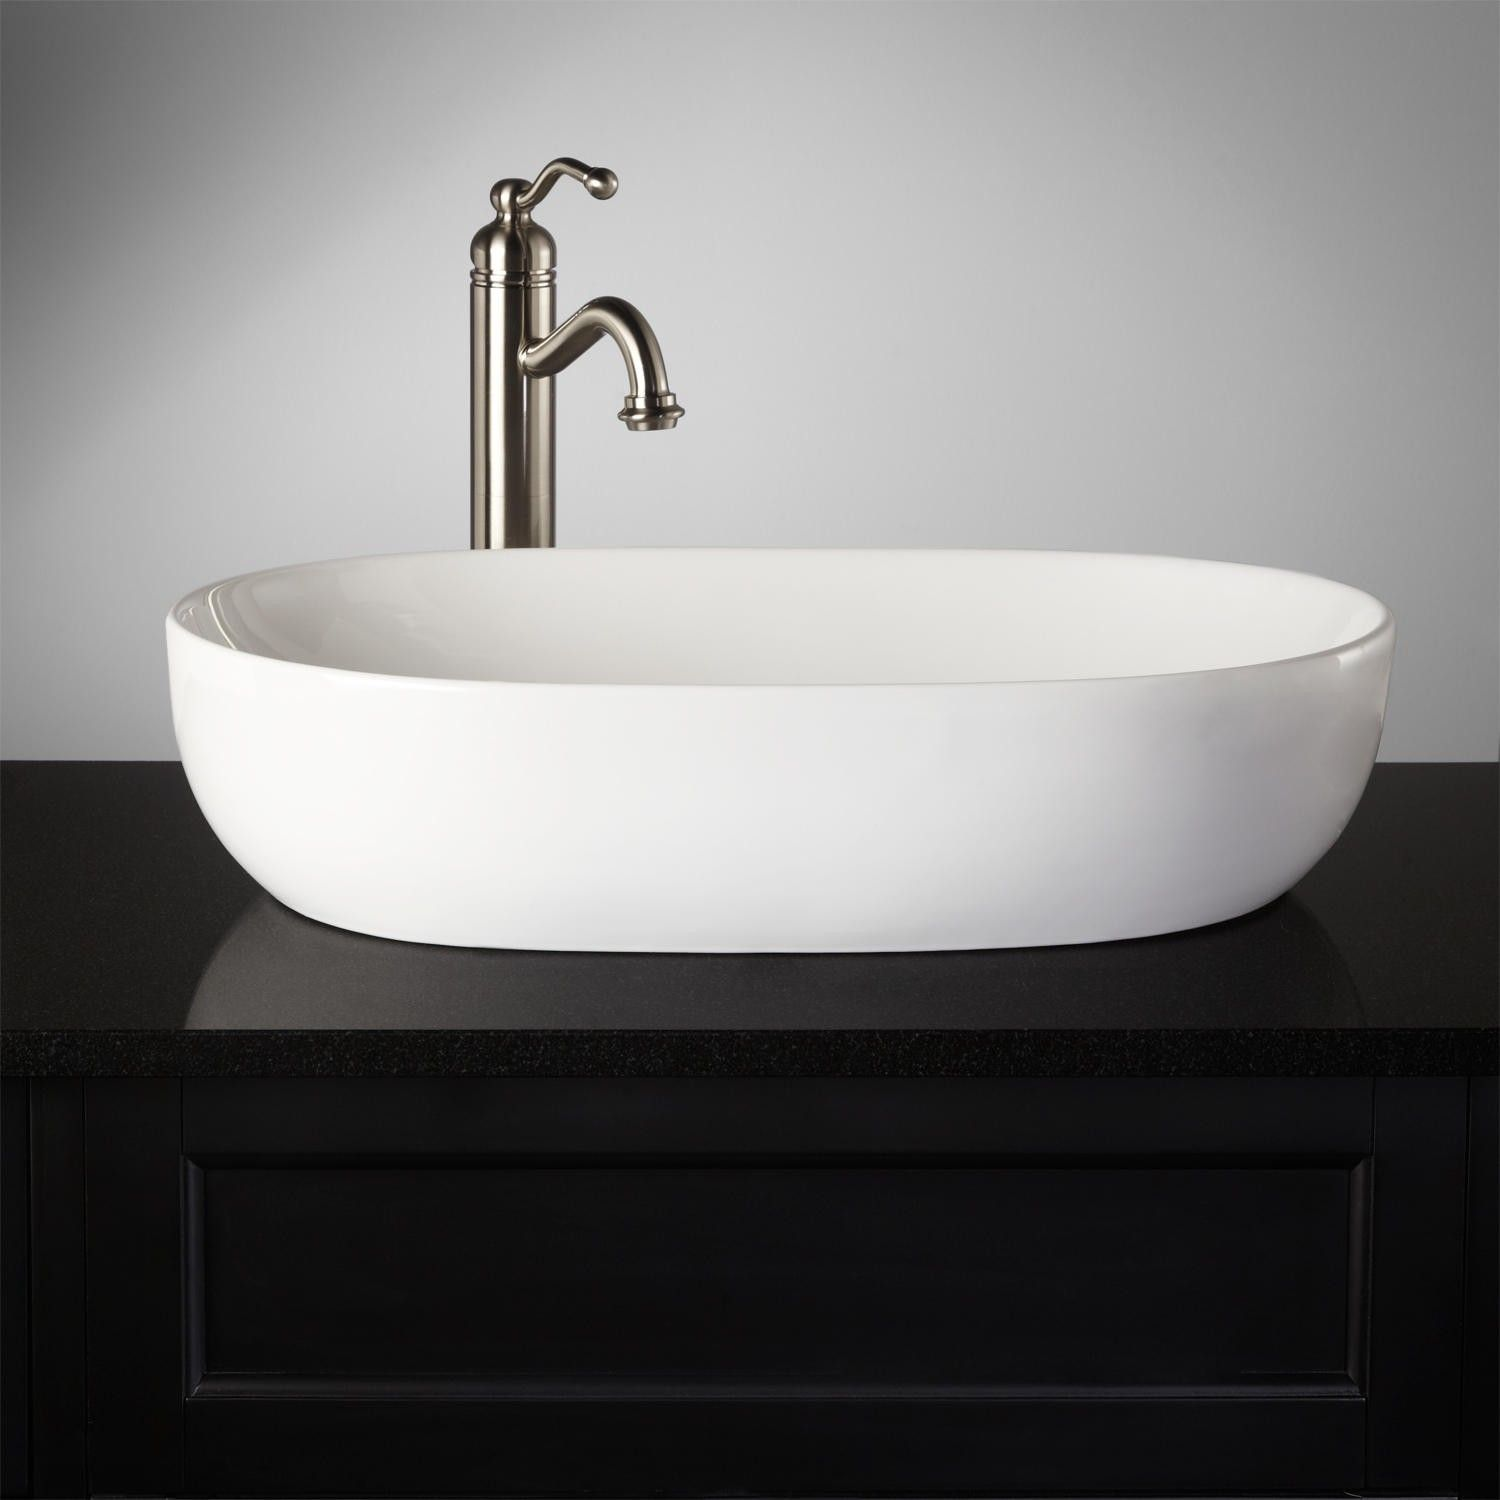 vessel bathroom wayfair rectangular pdx reviews home improvement sink sinks ceramic elite